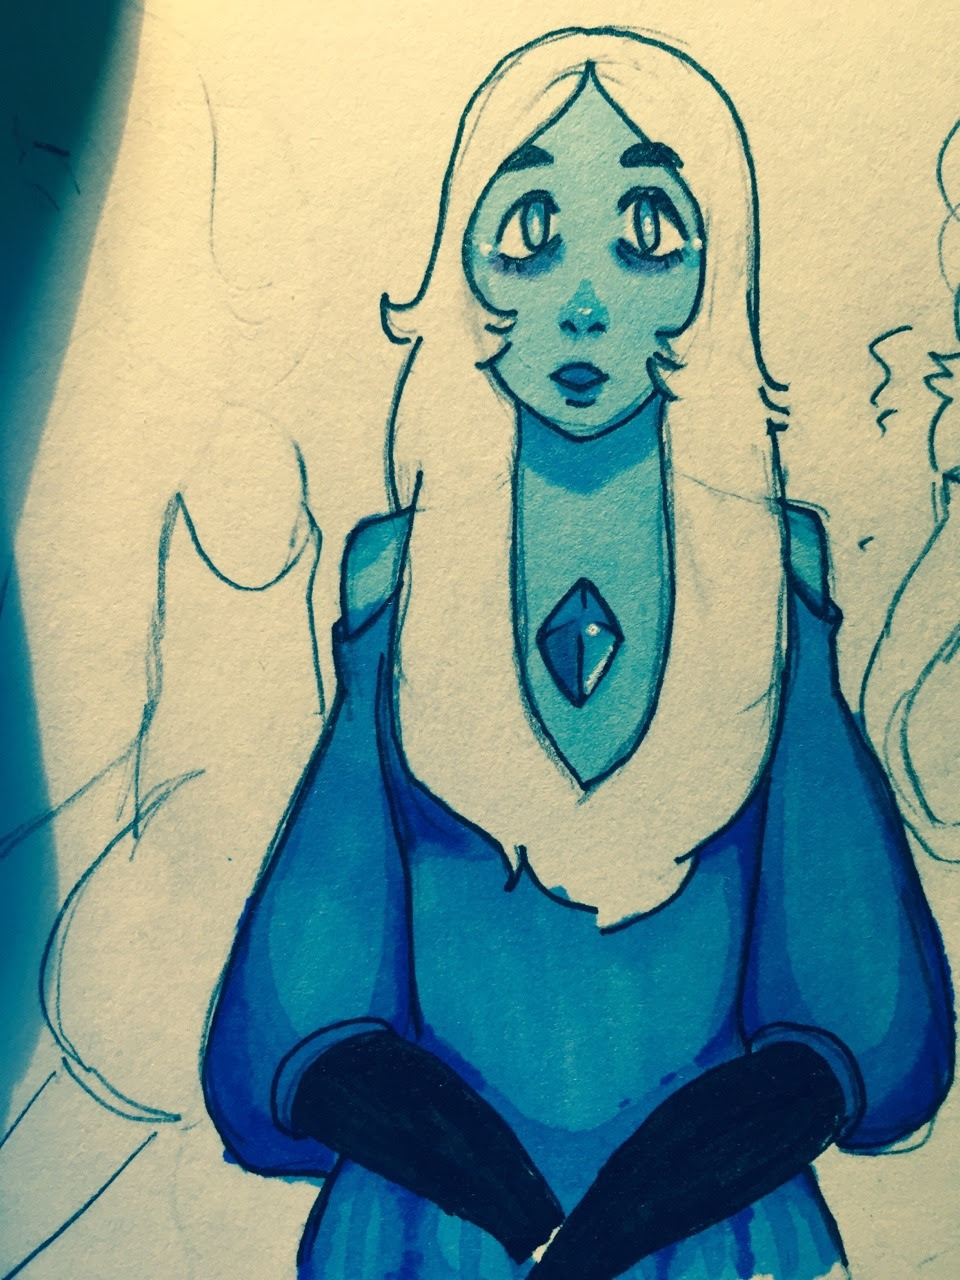 I usually dont post anything related to leaks until the episode has officially aired, but I drew this blue diamond the other day and I RLY wanted to share it Please try to support the official release...